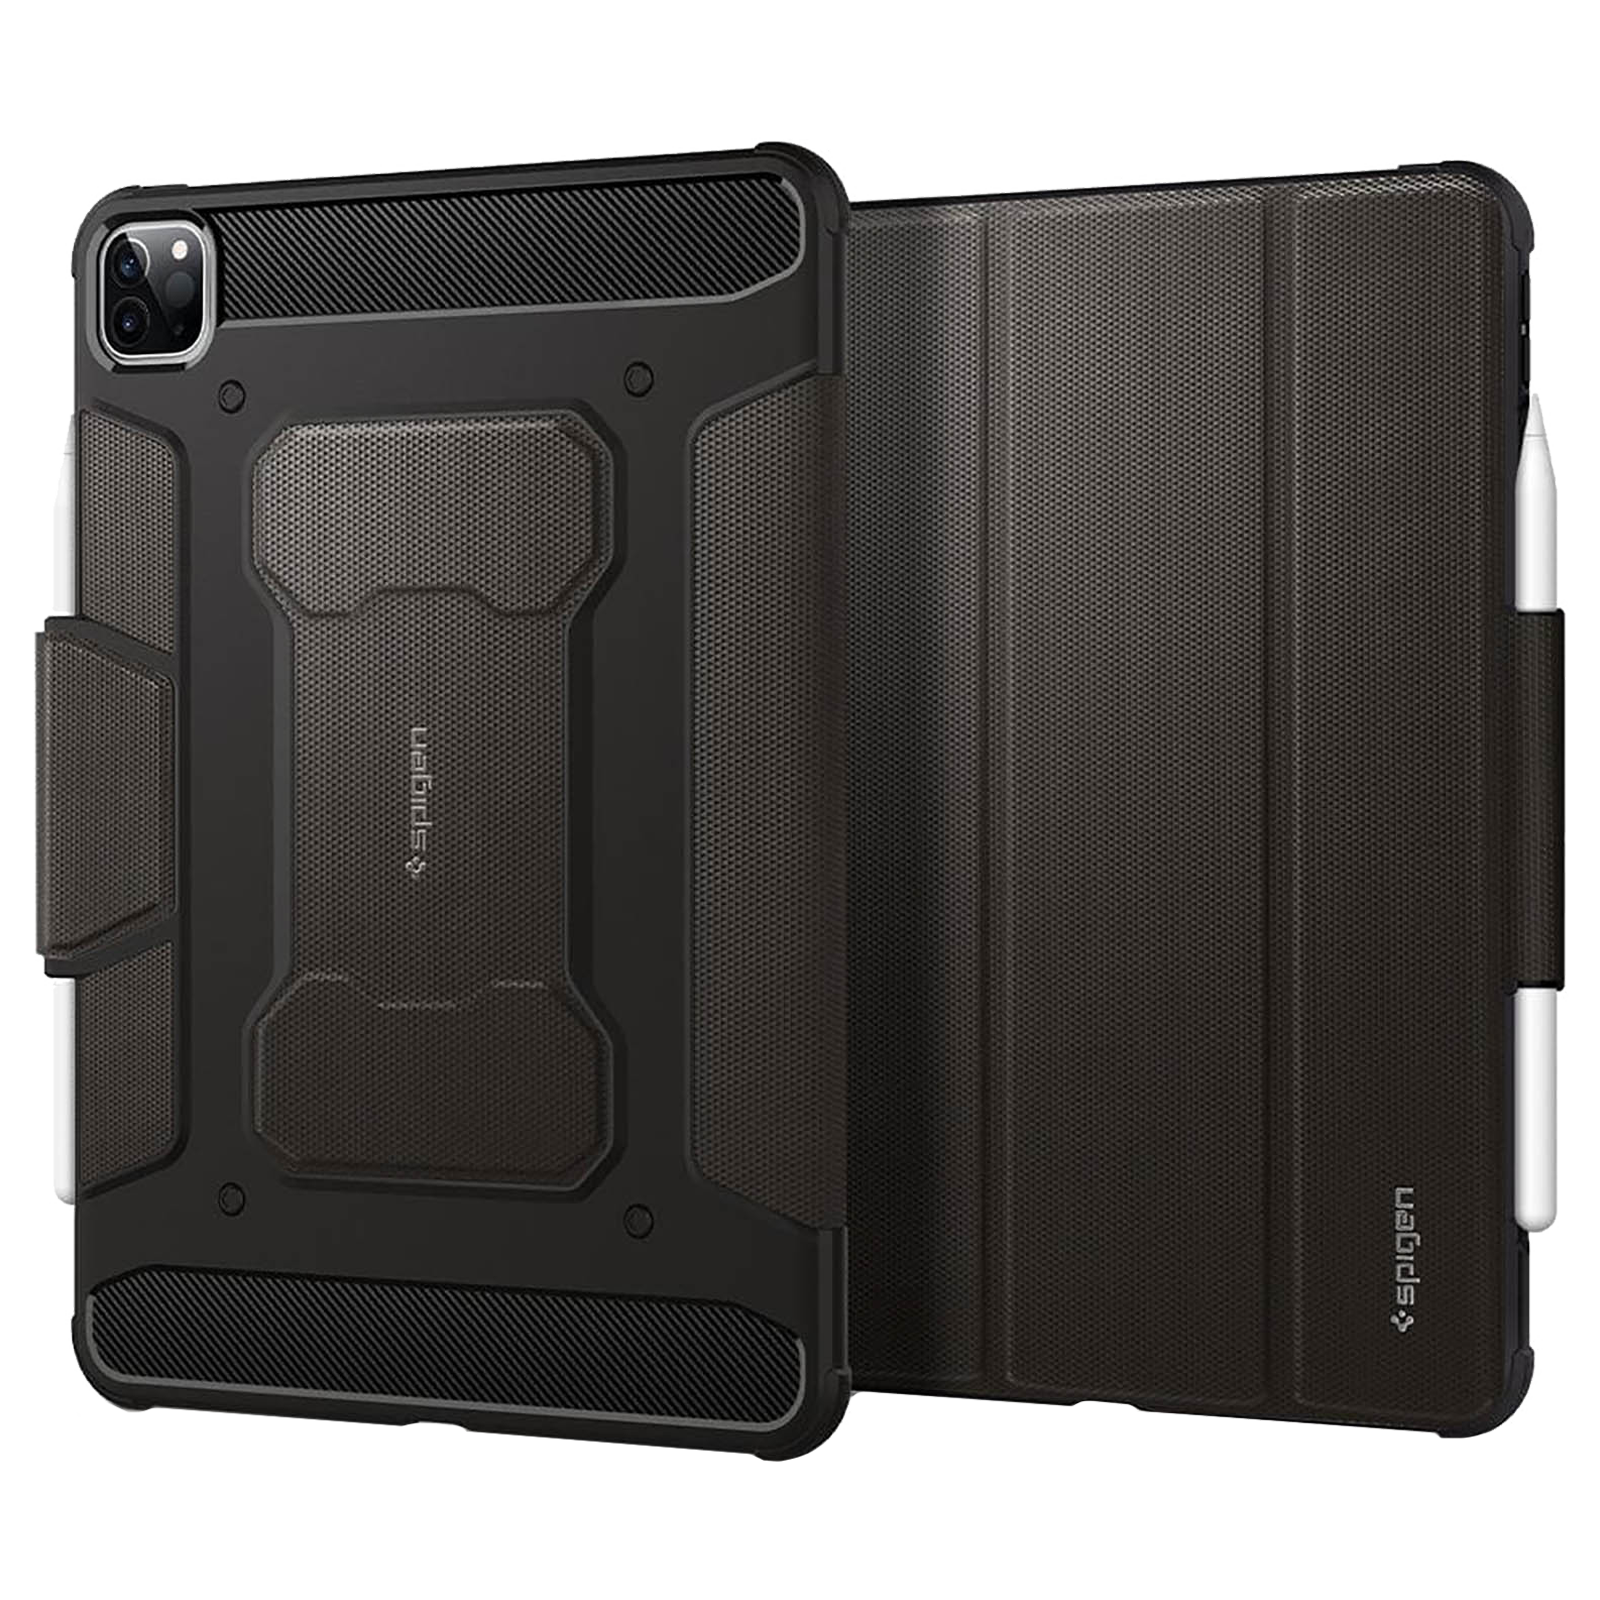 """Spigen Rugged Armor Pro PU Leather and TPU Full Cover Case For iPad Pro 11"""" (2021/2020/2018) (Air Cushion Technology, ACS01025, Gunmetal)_1"""